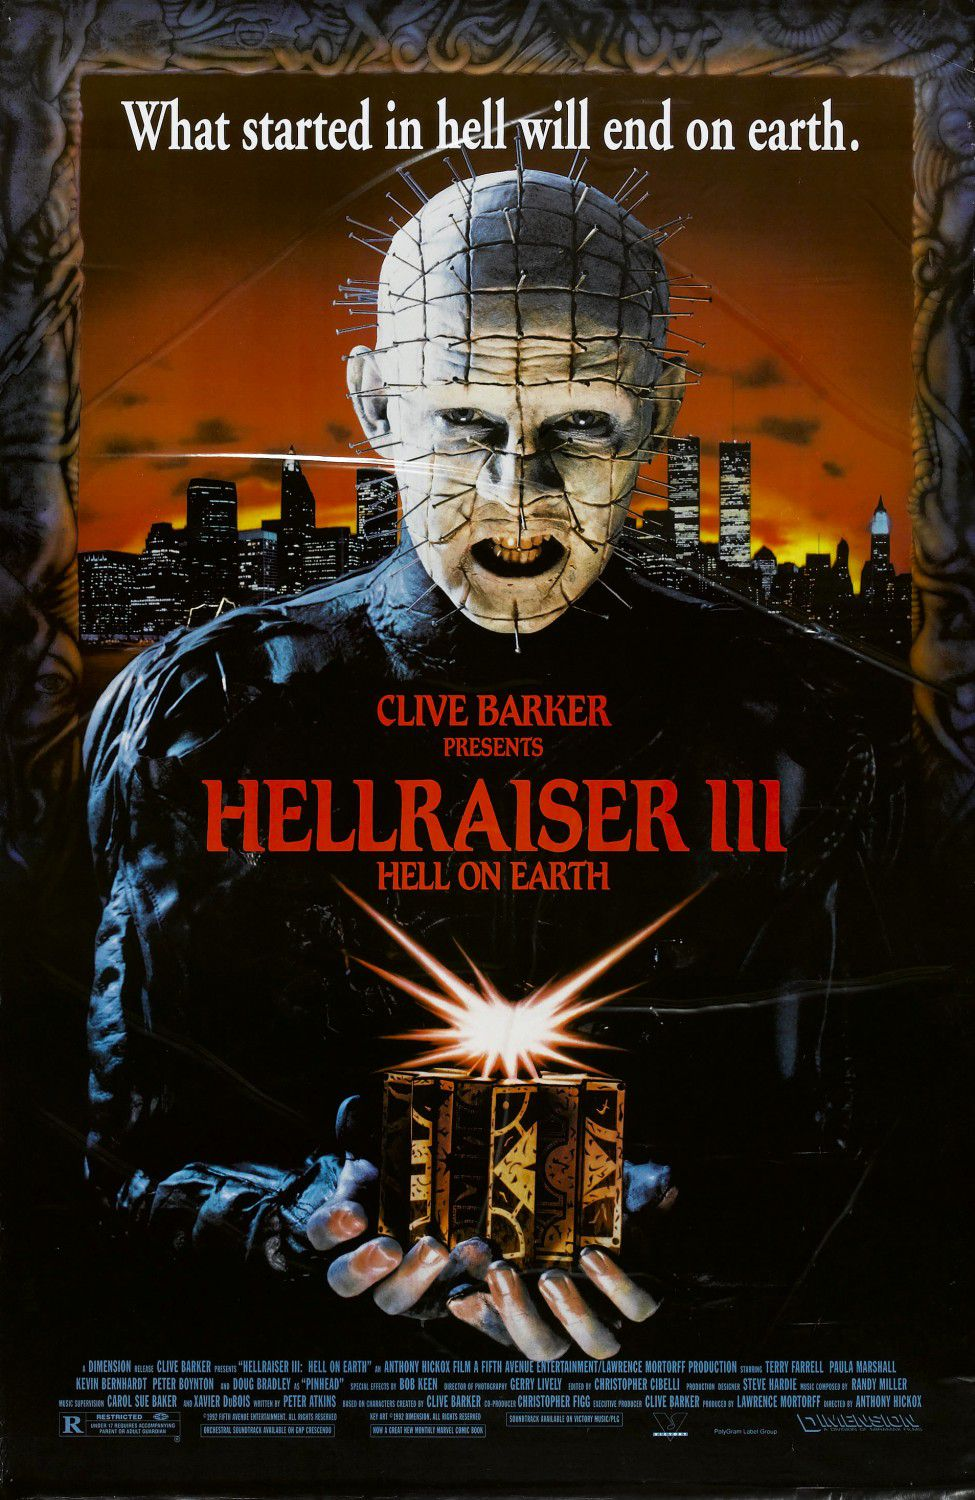 Hellraiser 3 Hell on Earth (1992) - horror film poster